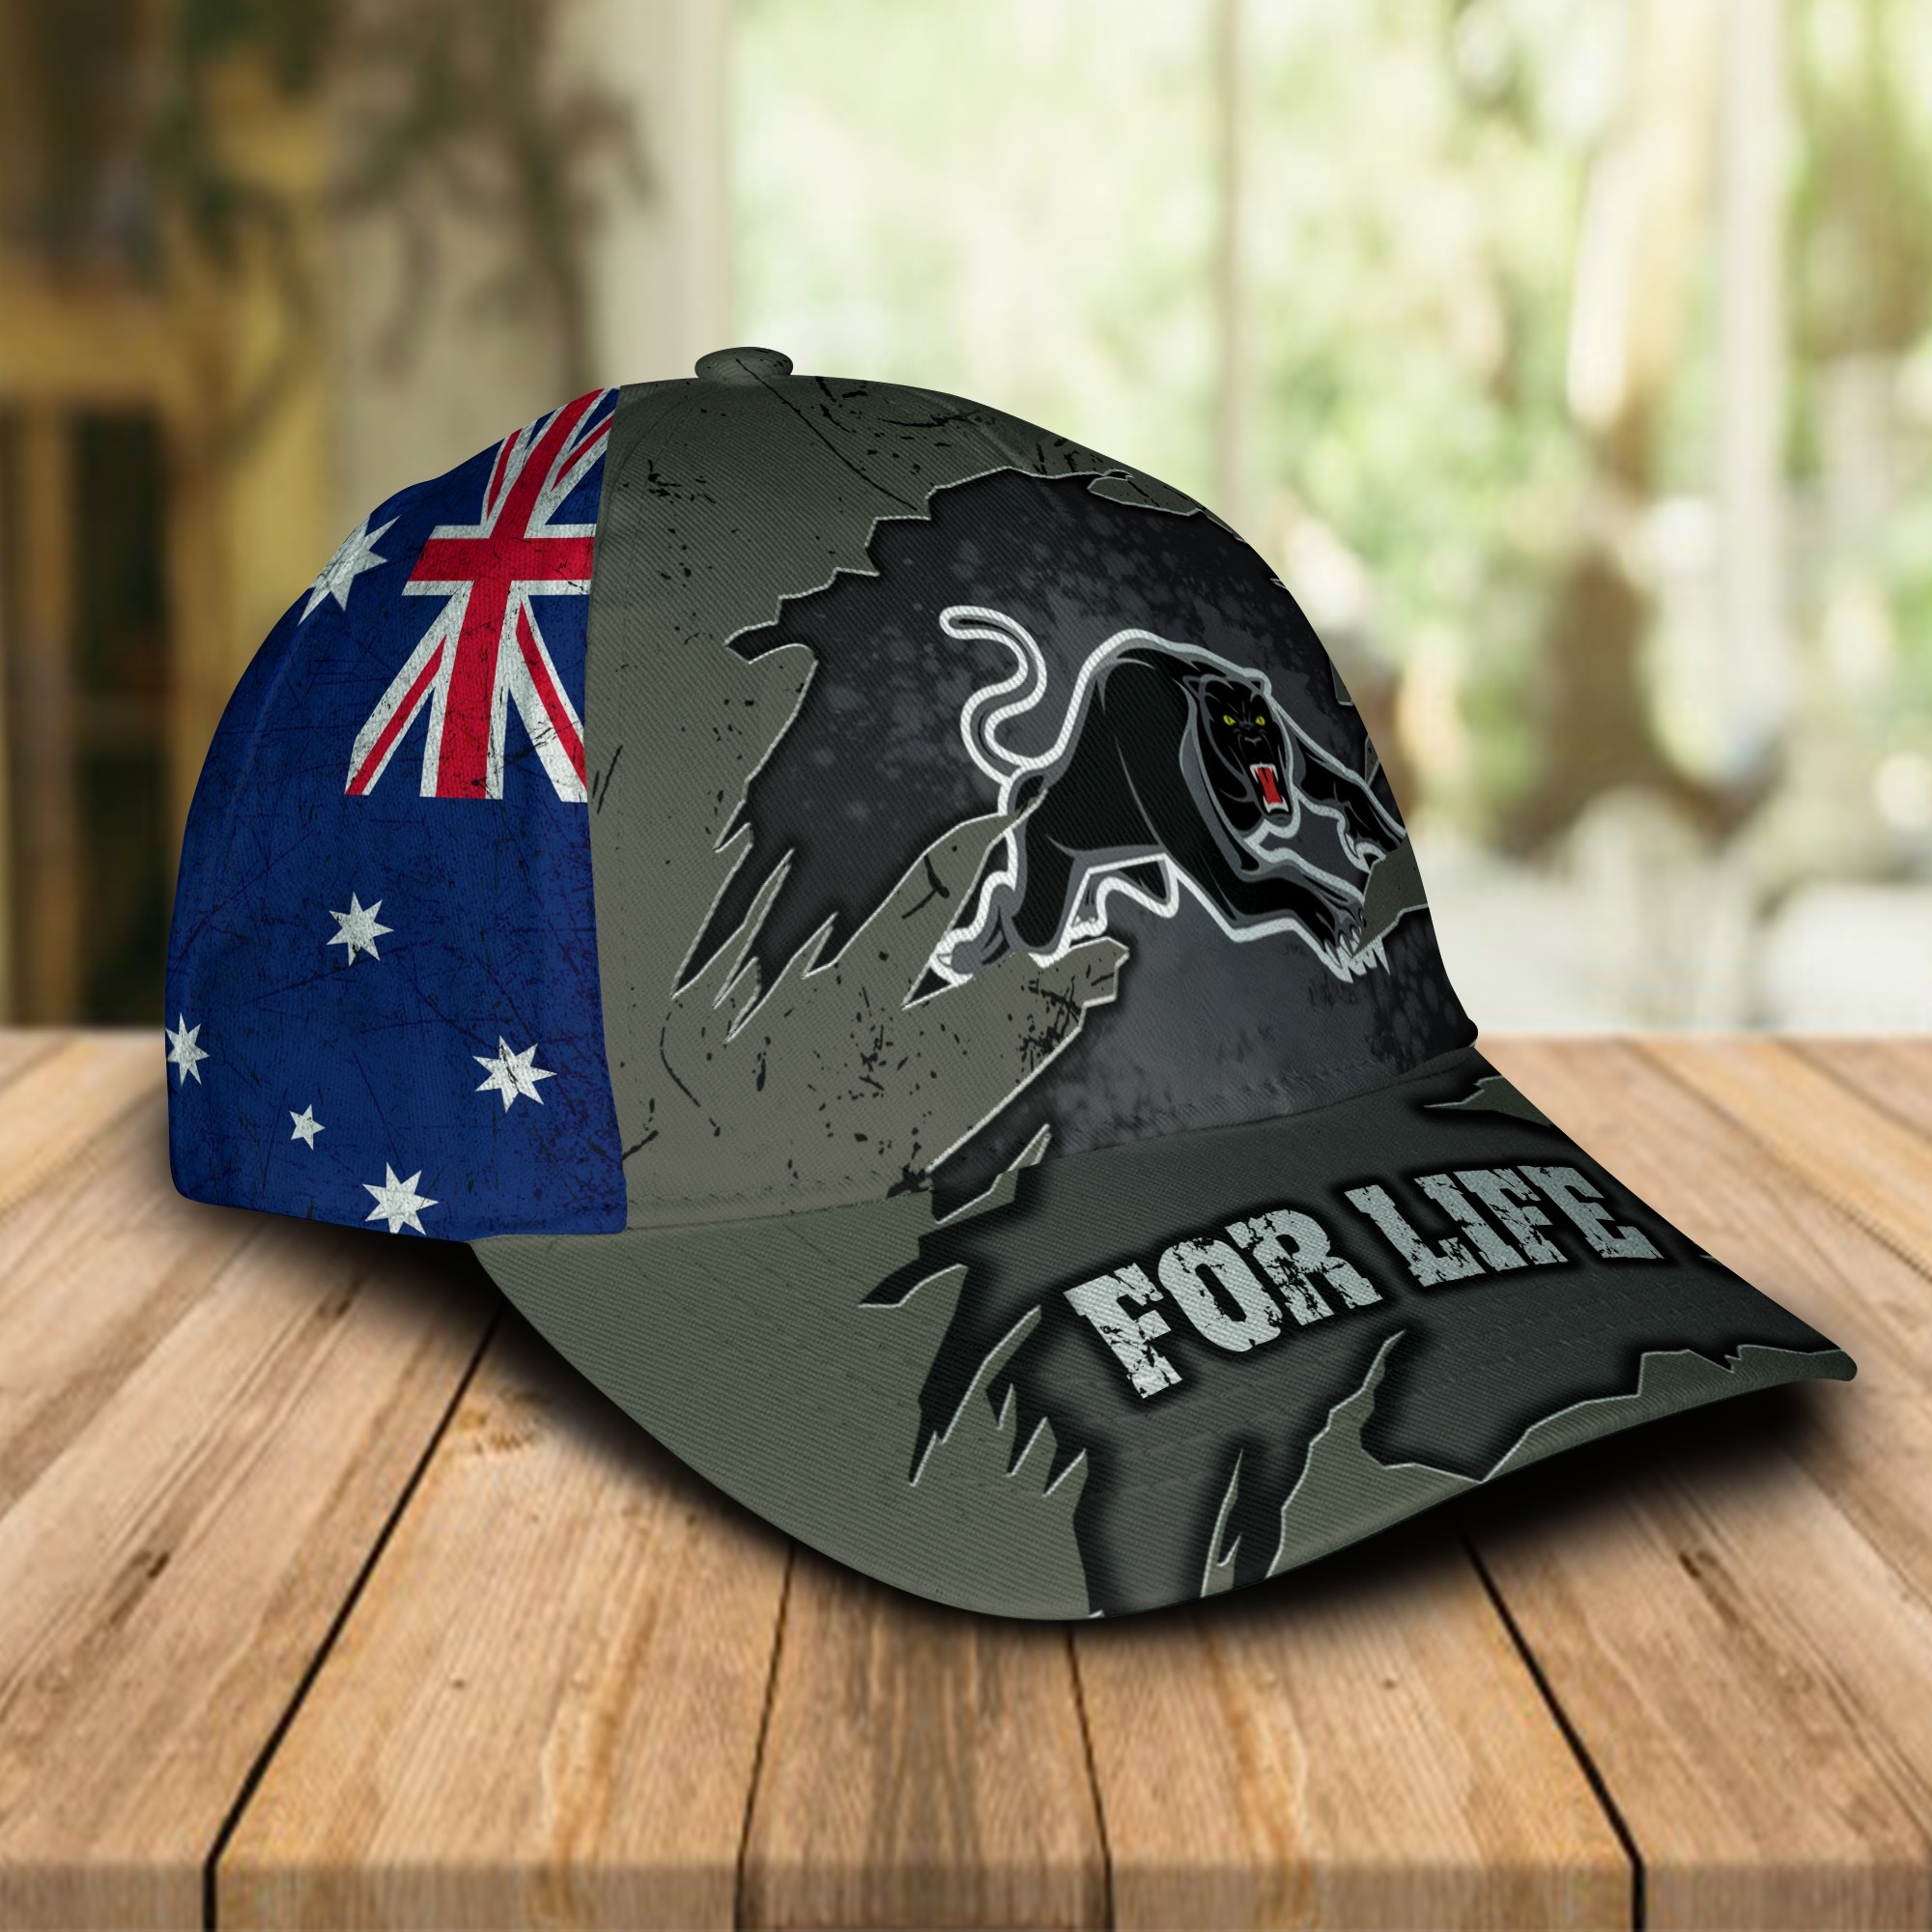 Penrith Panthers for life cap 1